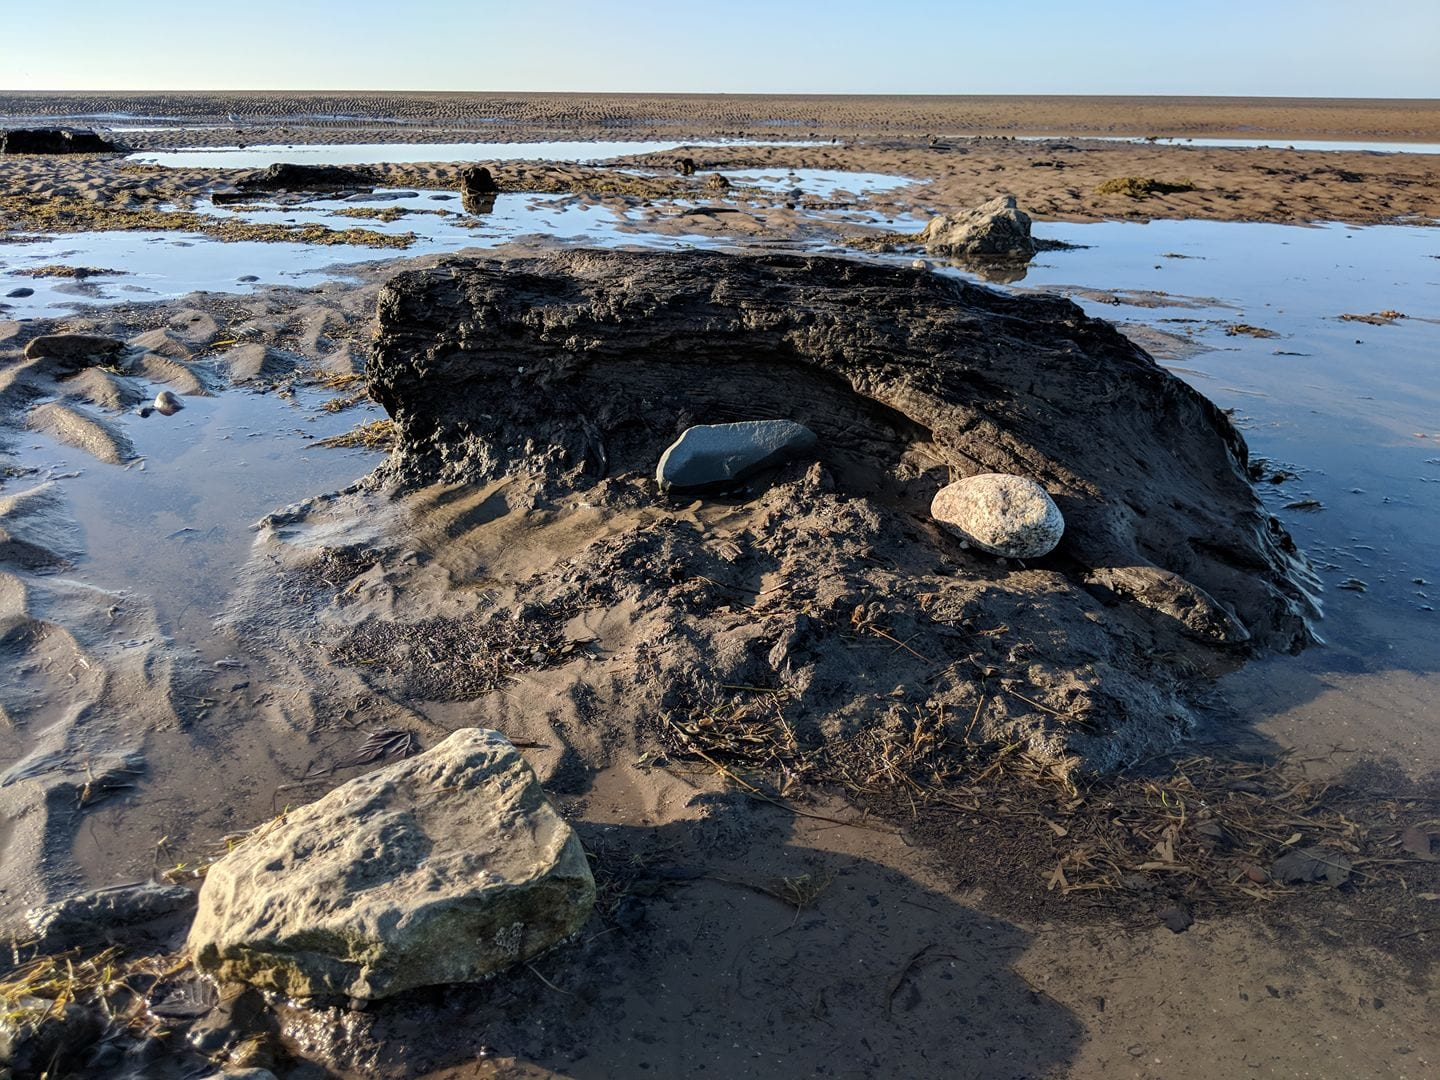 Tree stumps from the petrified forest on Cleveleys beach. Photo: Andy Blundell